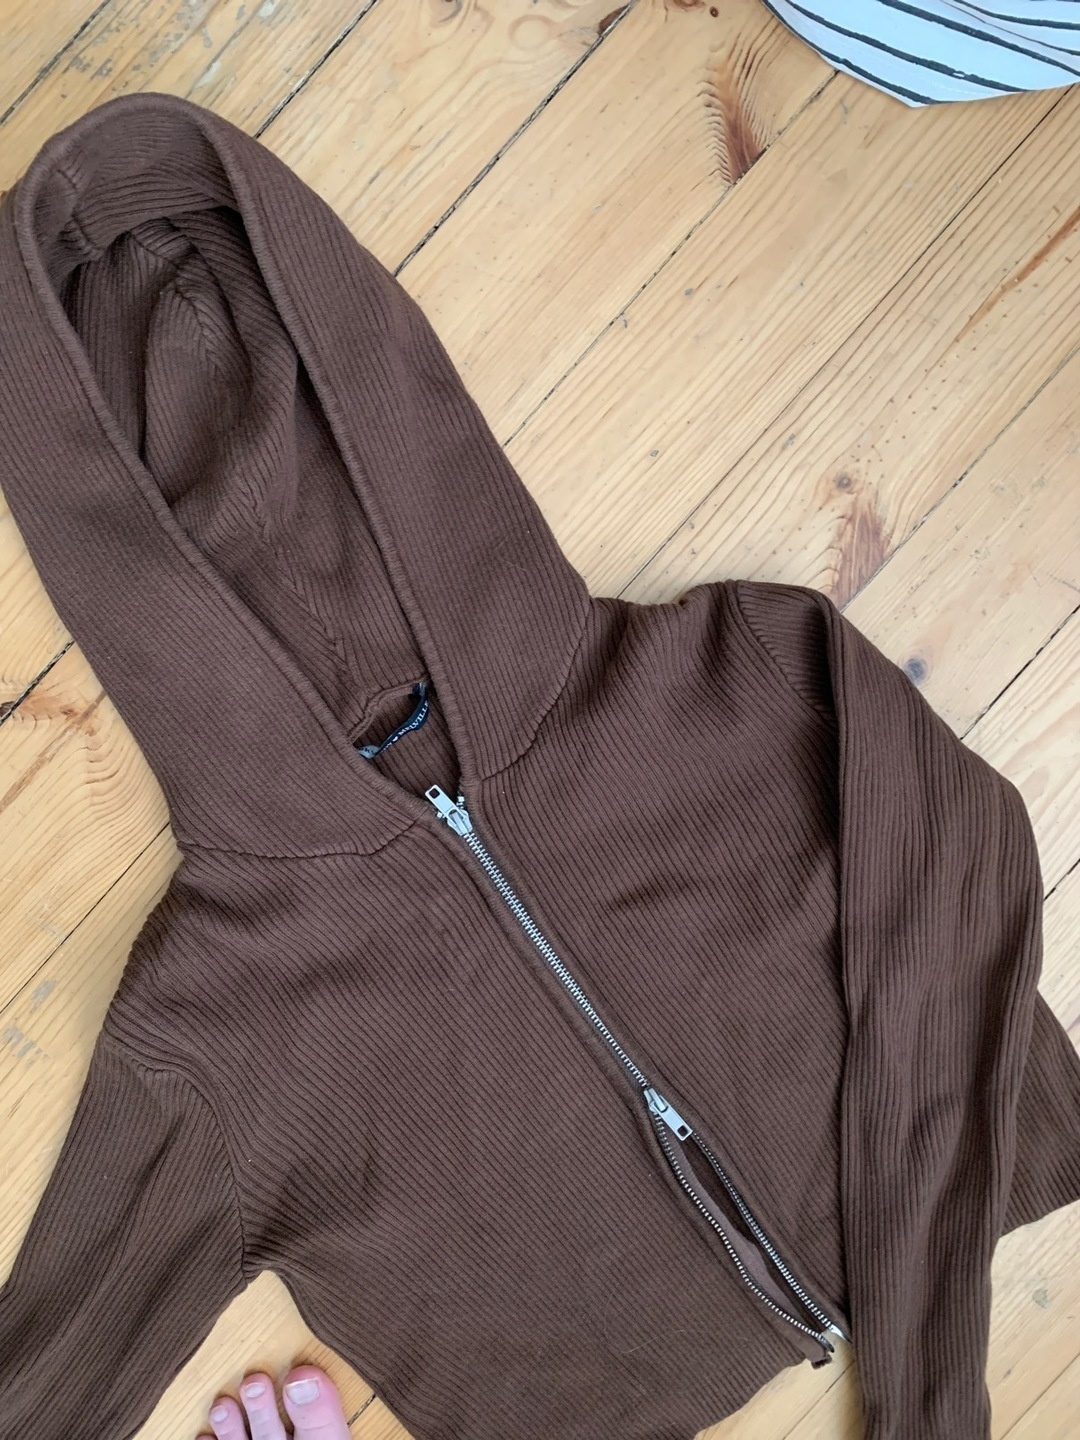 Women's jumpers & cardigans - BRANDY MELVILLE photo 2